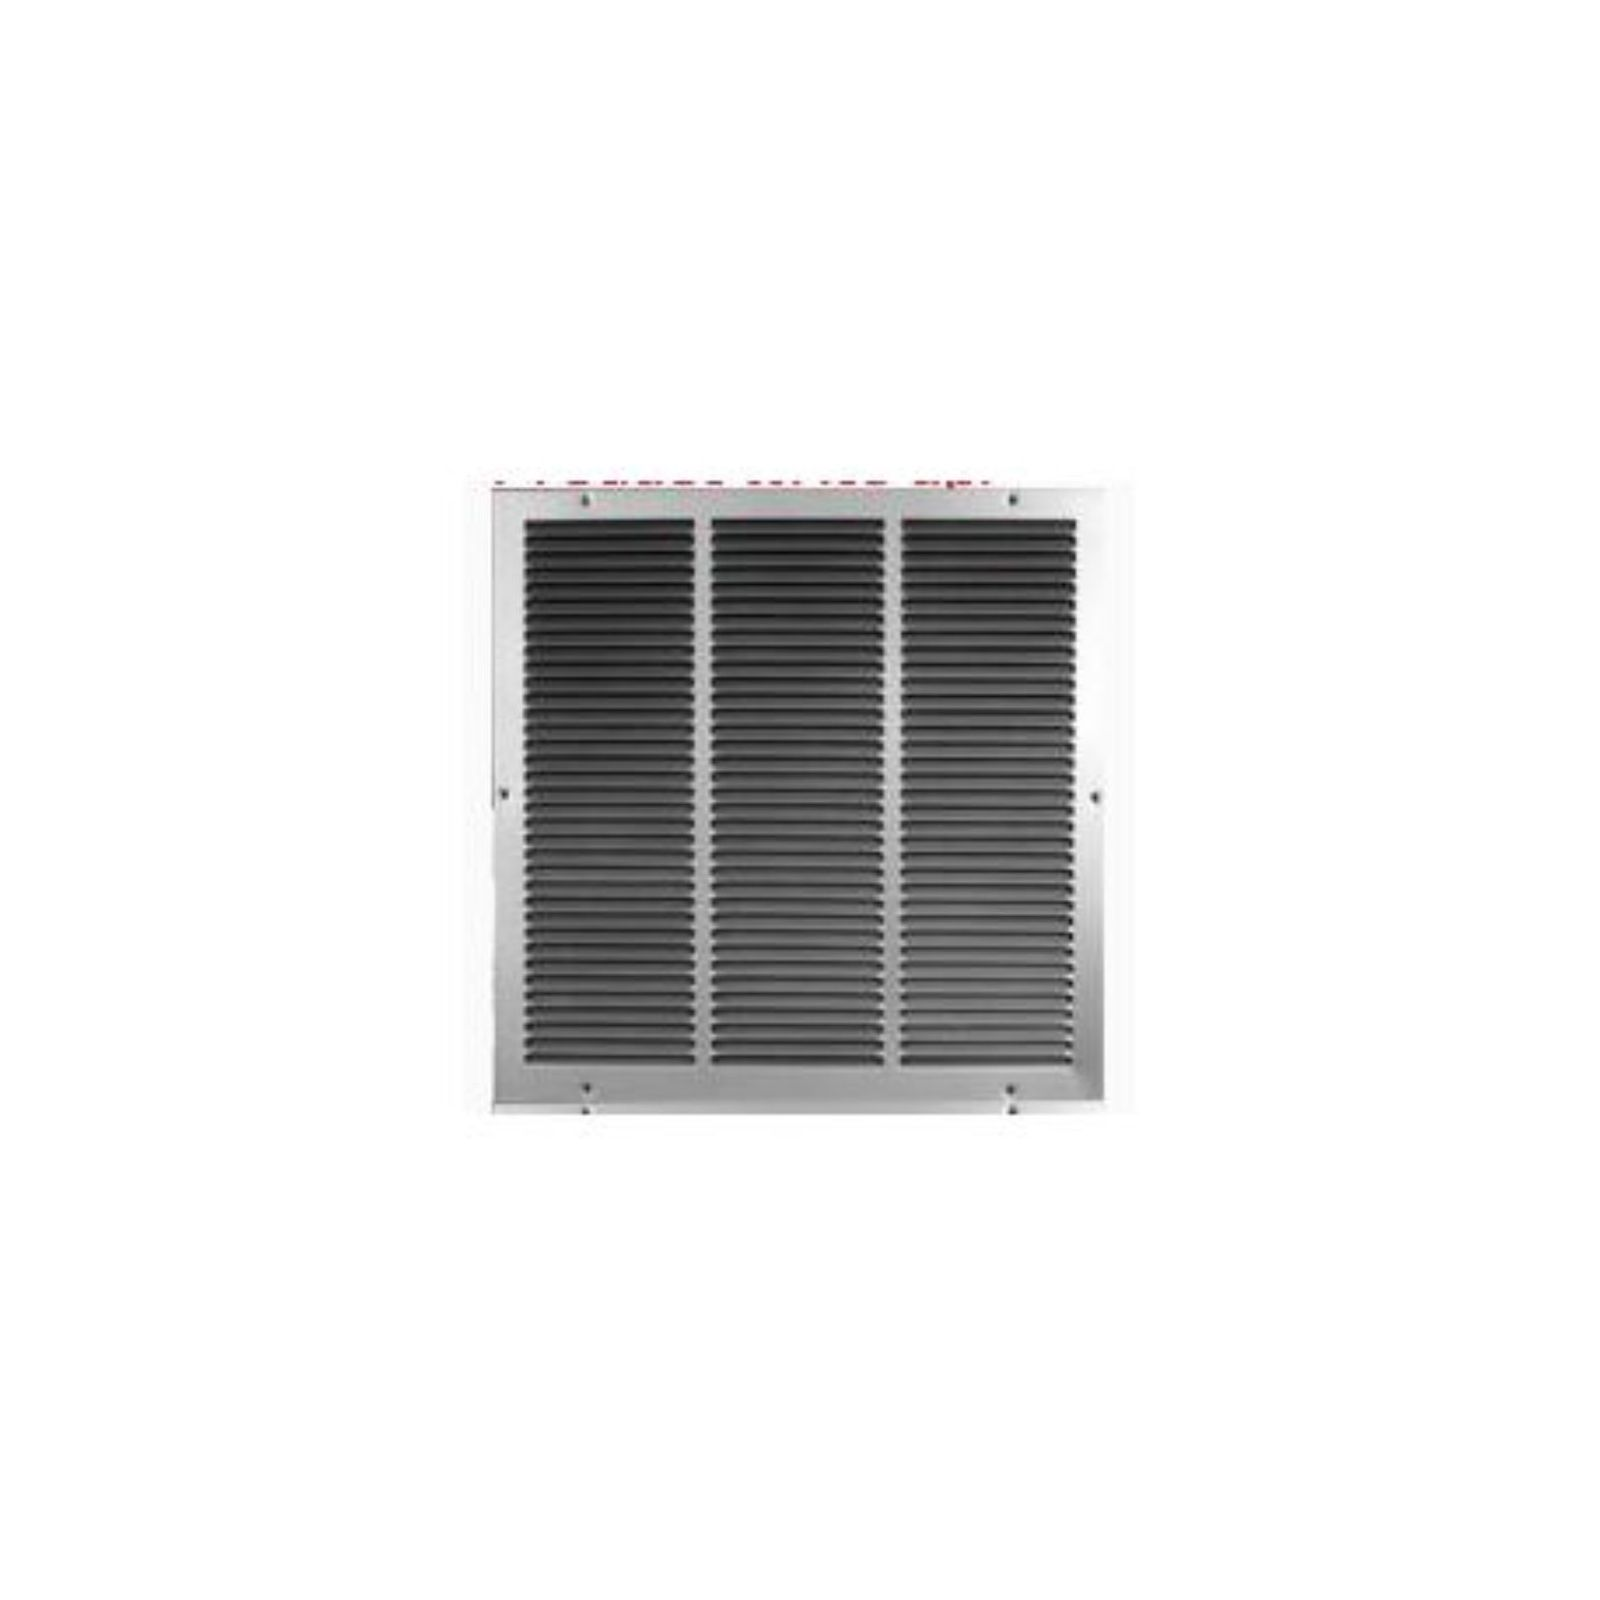 "USAIRE 140036X08 - USAire #1400 Series Return Air Grille, 36"" X 8"""